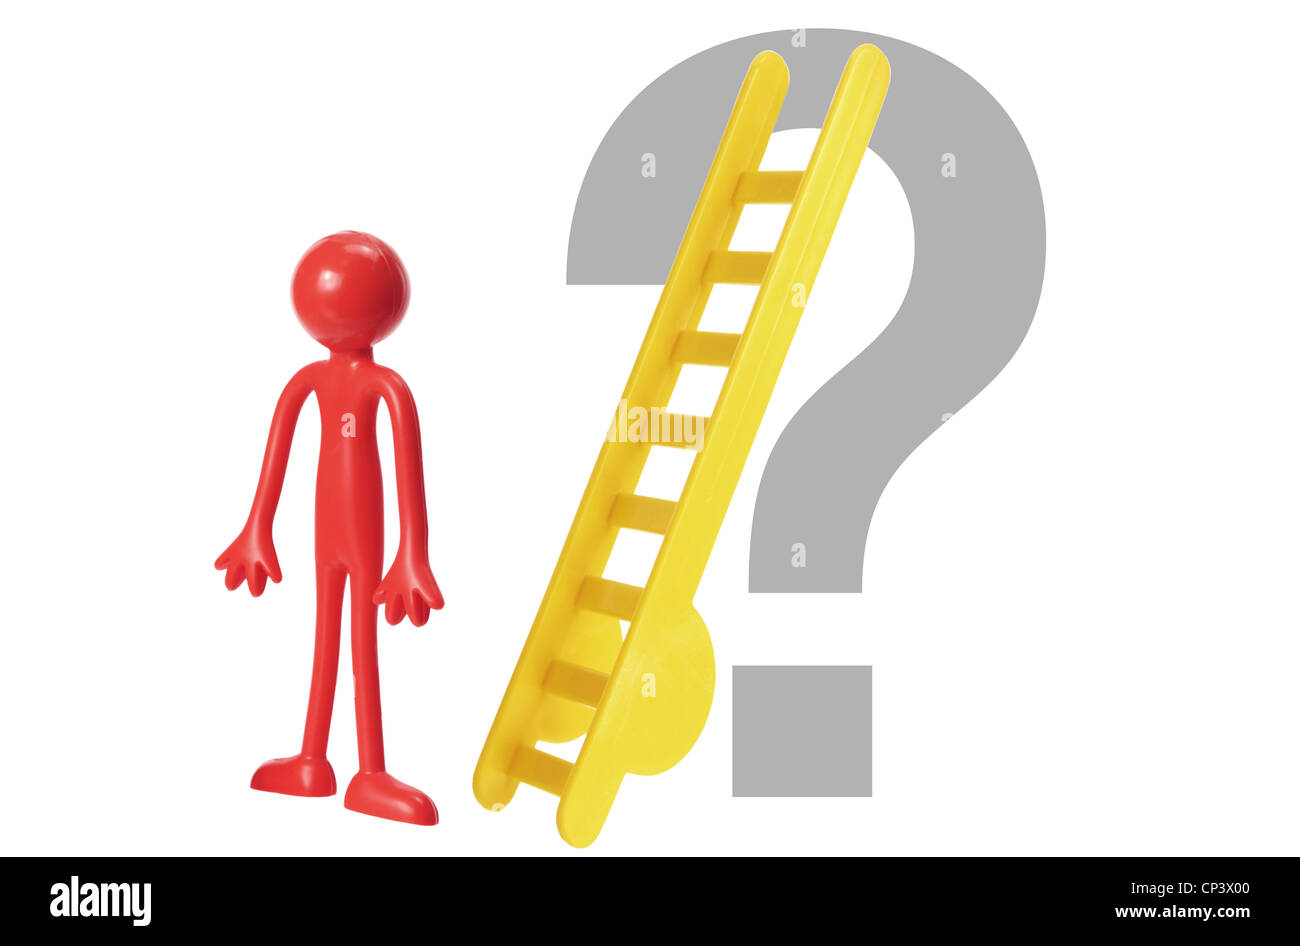 Miniature Rubber Figure with Ladder and Question Mark - Stock Image